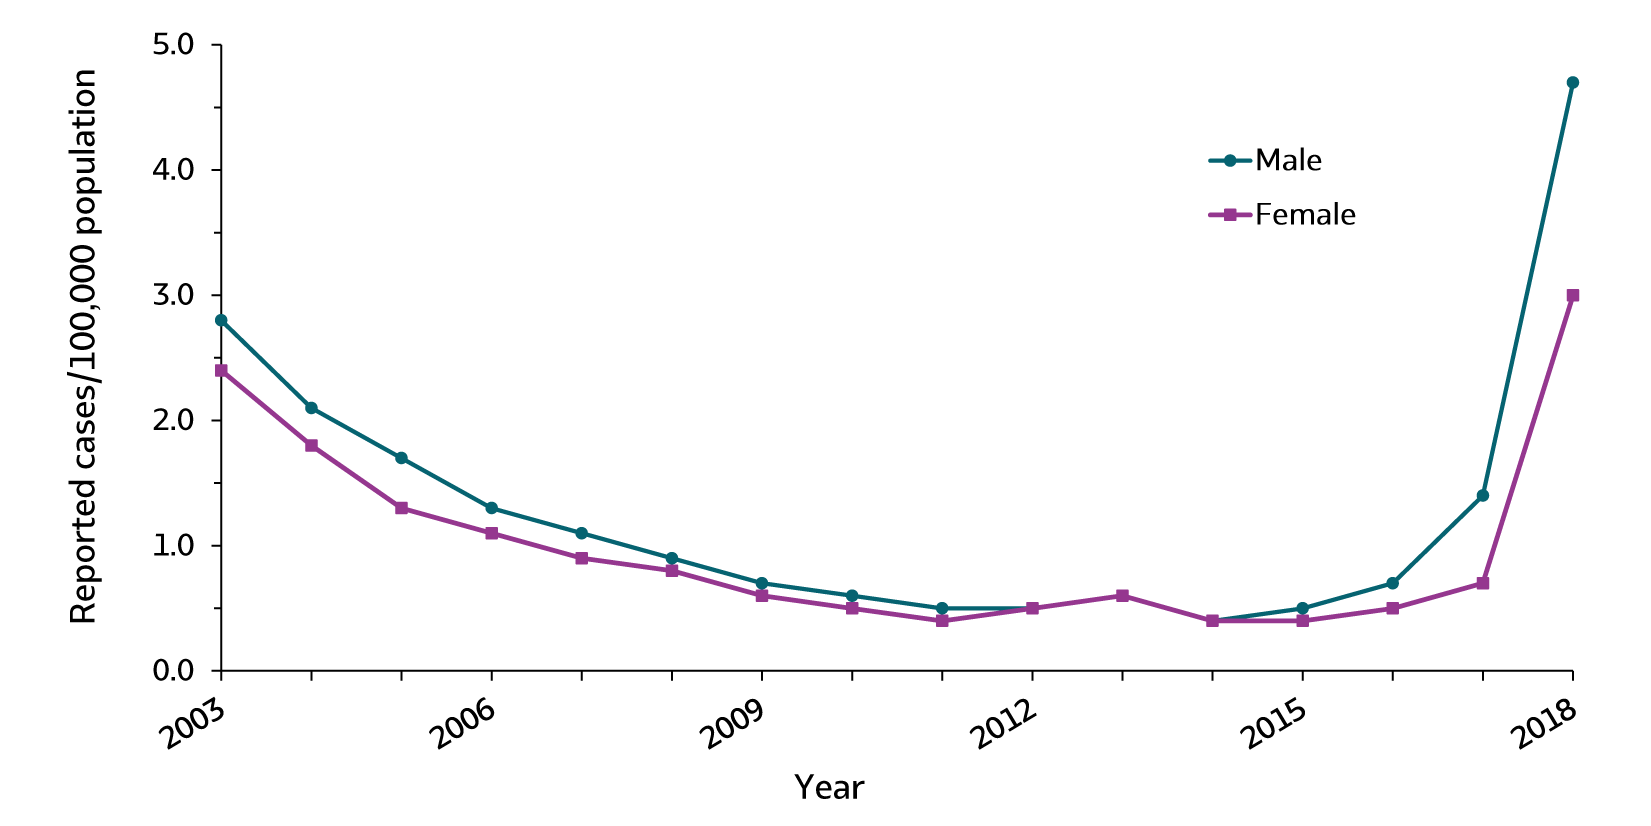 Figure 1.5.  The line graph shows trends in rates of hepatitis A for males and females from 2003 through 2018. Rates for males and females declined from 2003 through 2011 and remained constant through 2015. Rates increased from 2016 through 2018, with the largest increase from 2017 to 2018.  Rates for males were higher than rates for females for all years except 2012 through 2014, when the rates were equal.